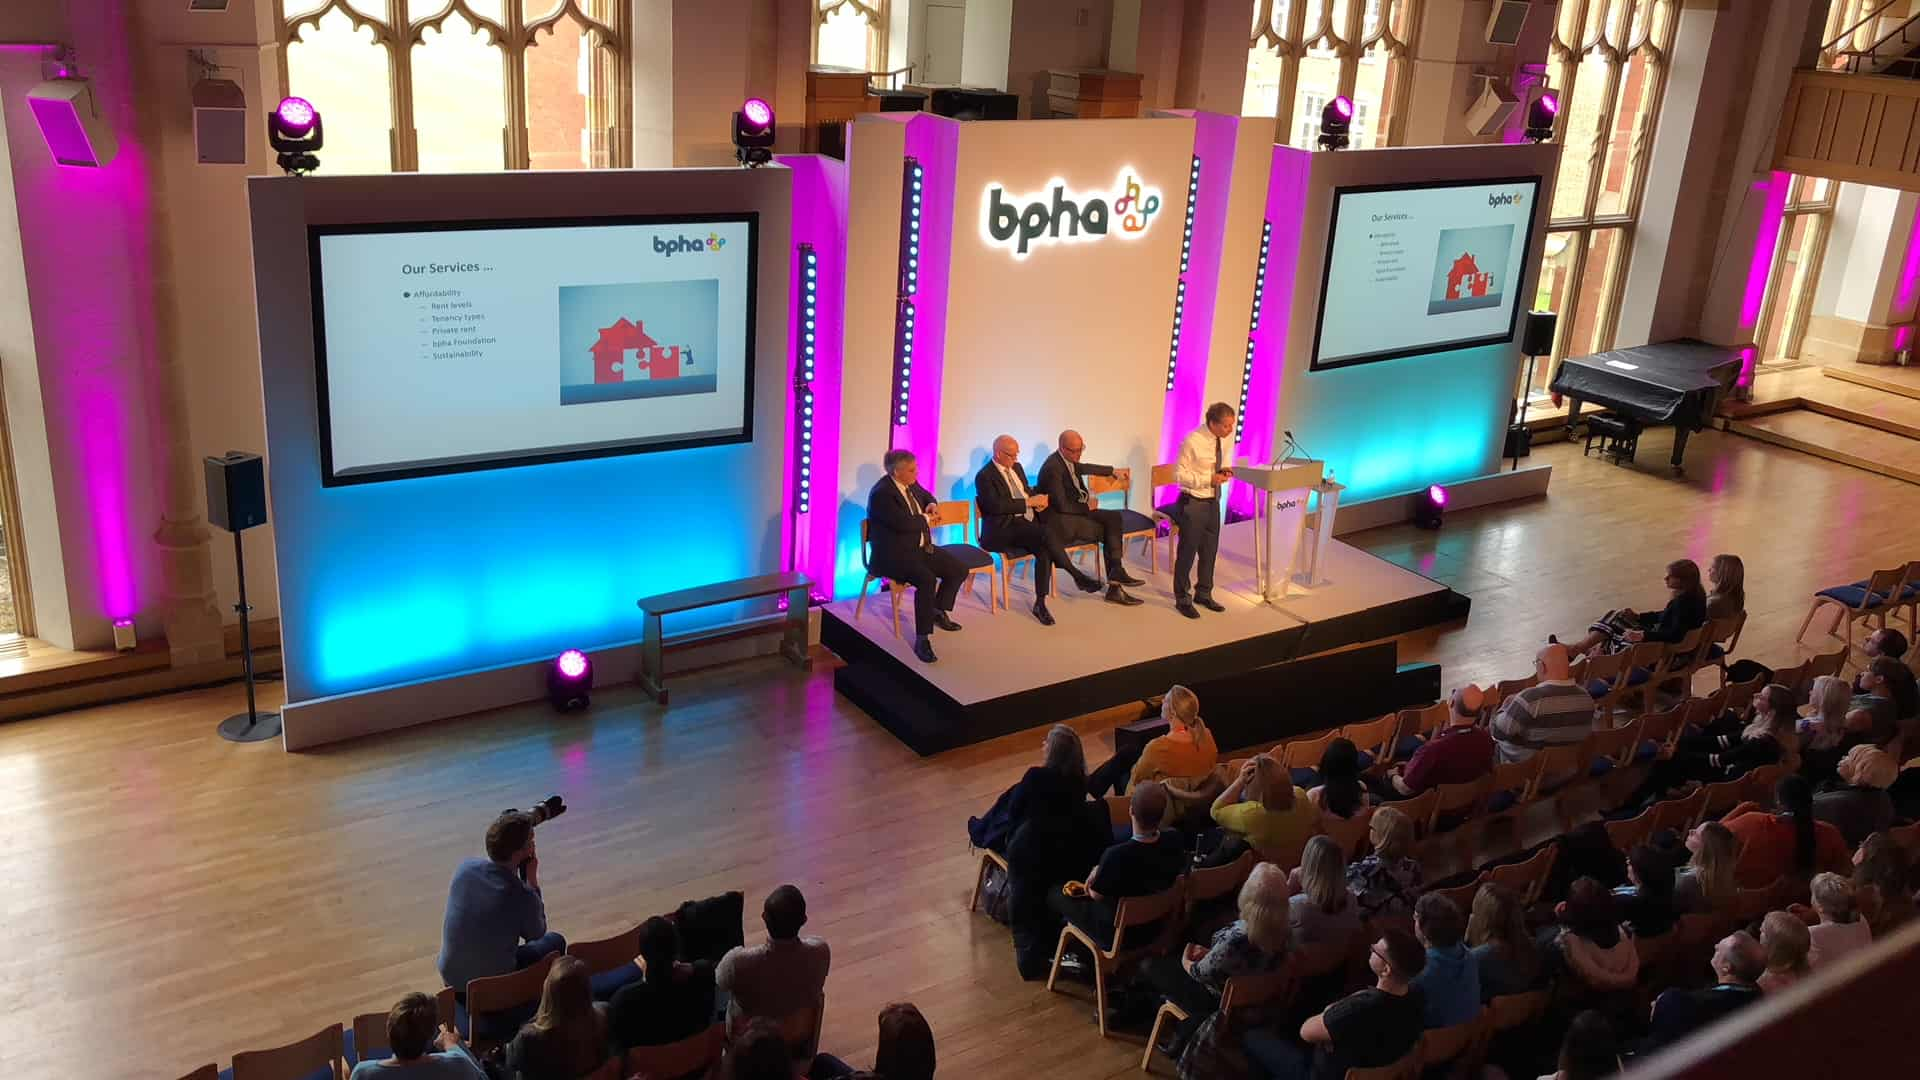 Projector screen and lighting hire for conference